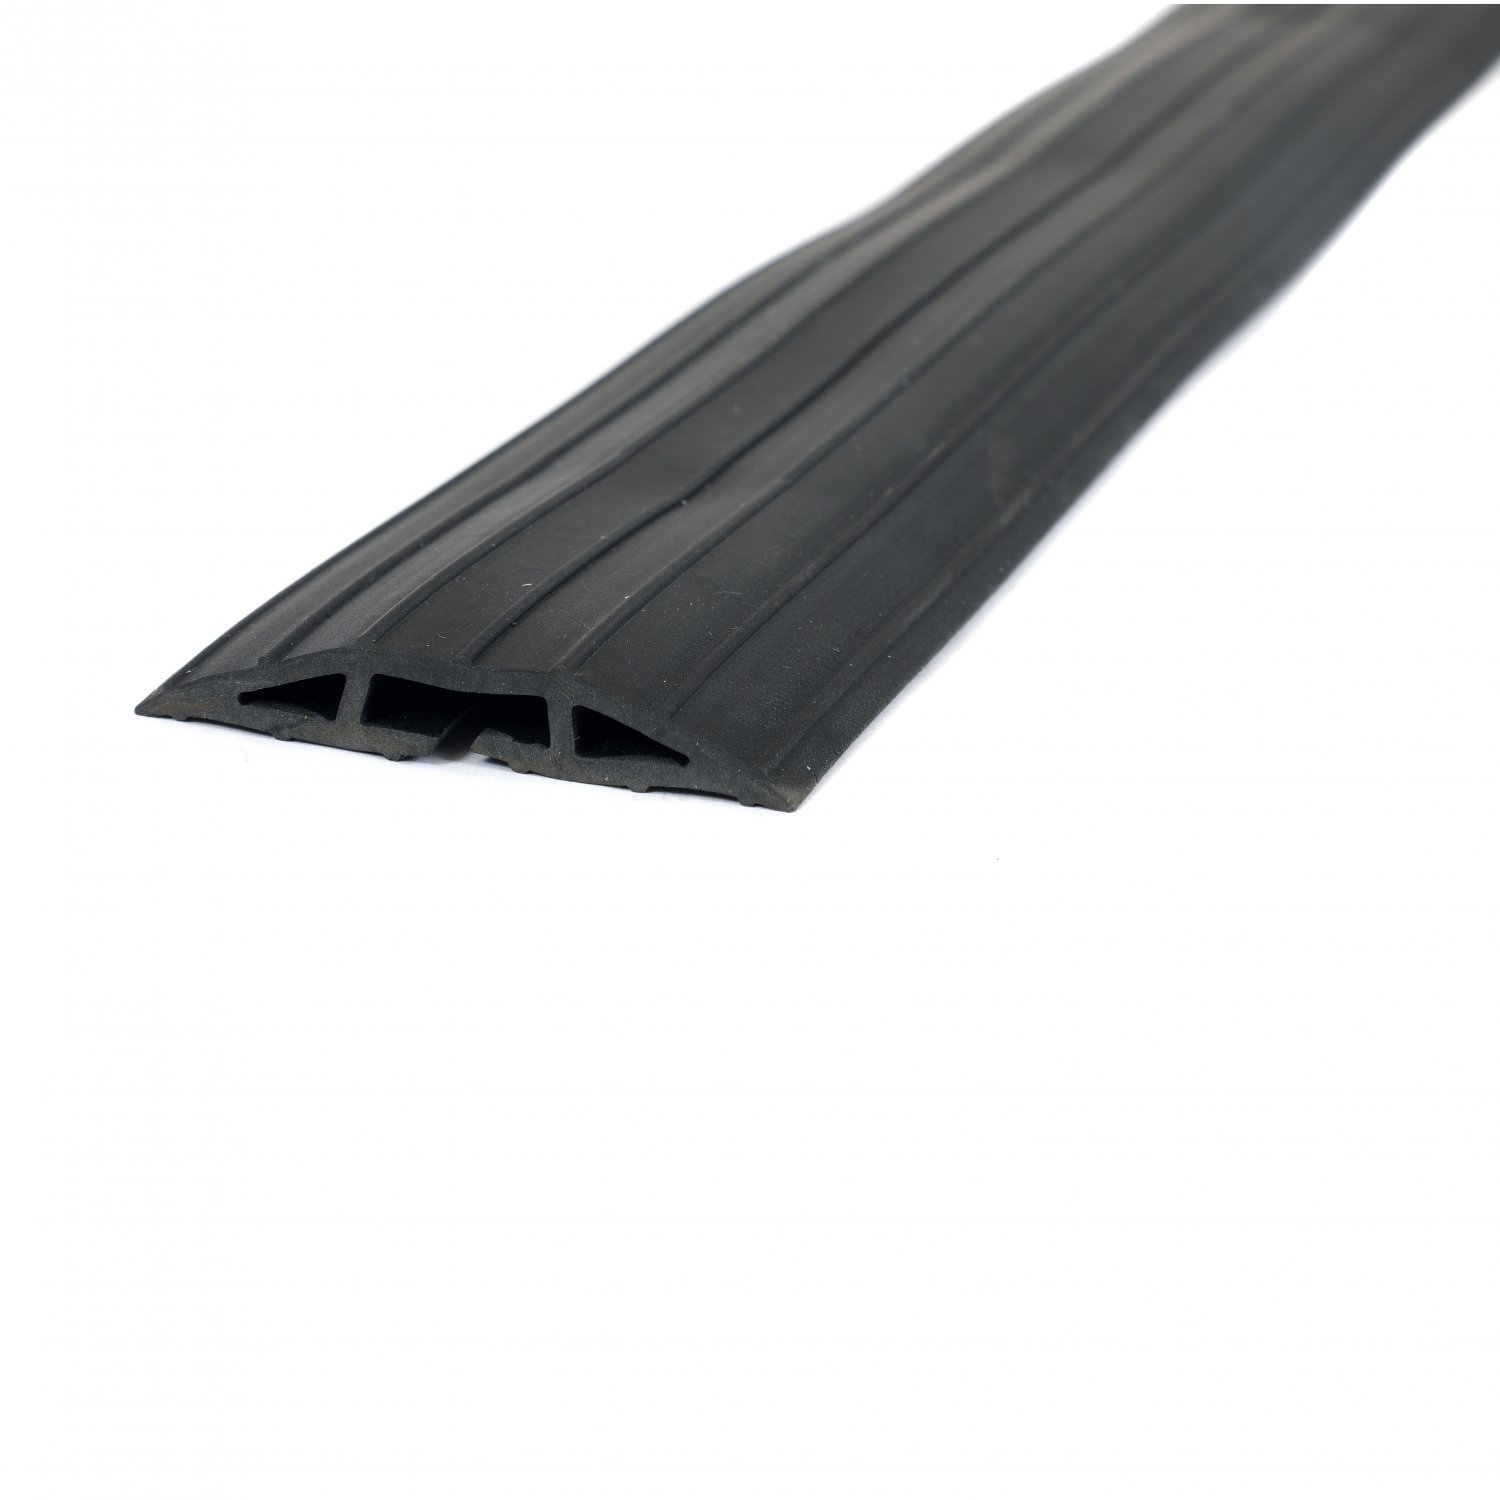 2m Black Rubber Floor Cable Protector Safety Trunking Ramp